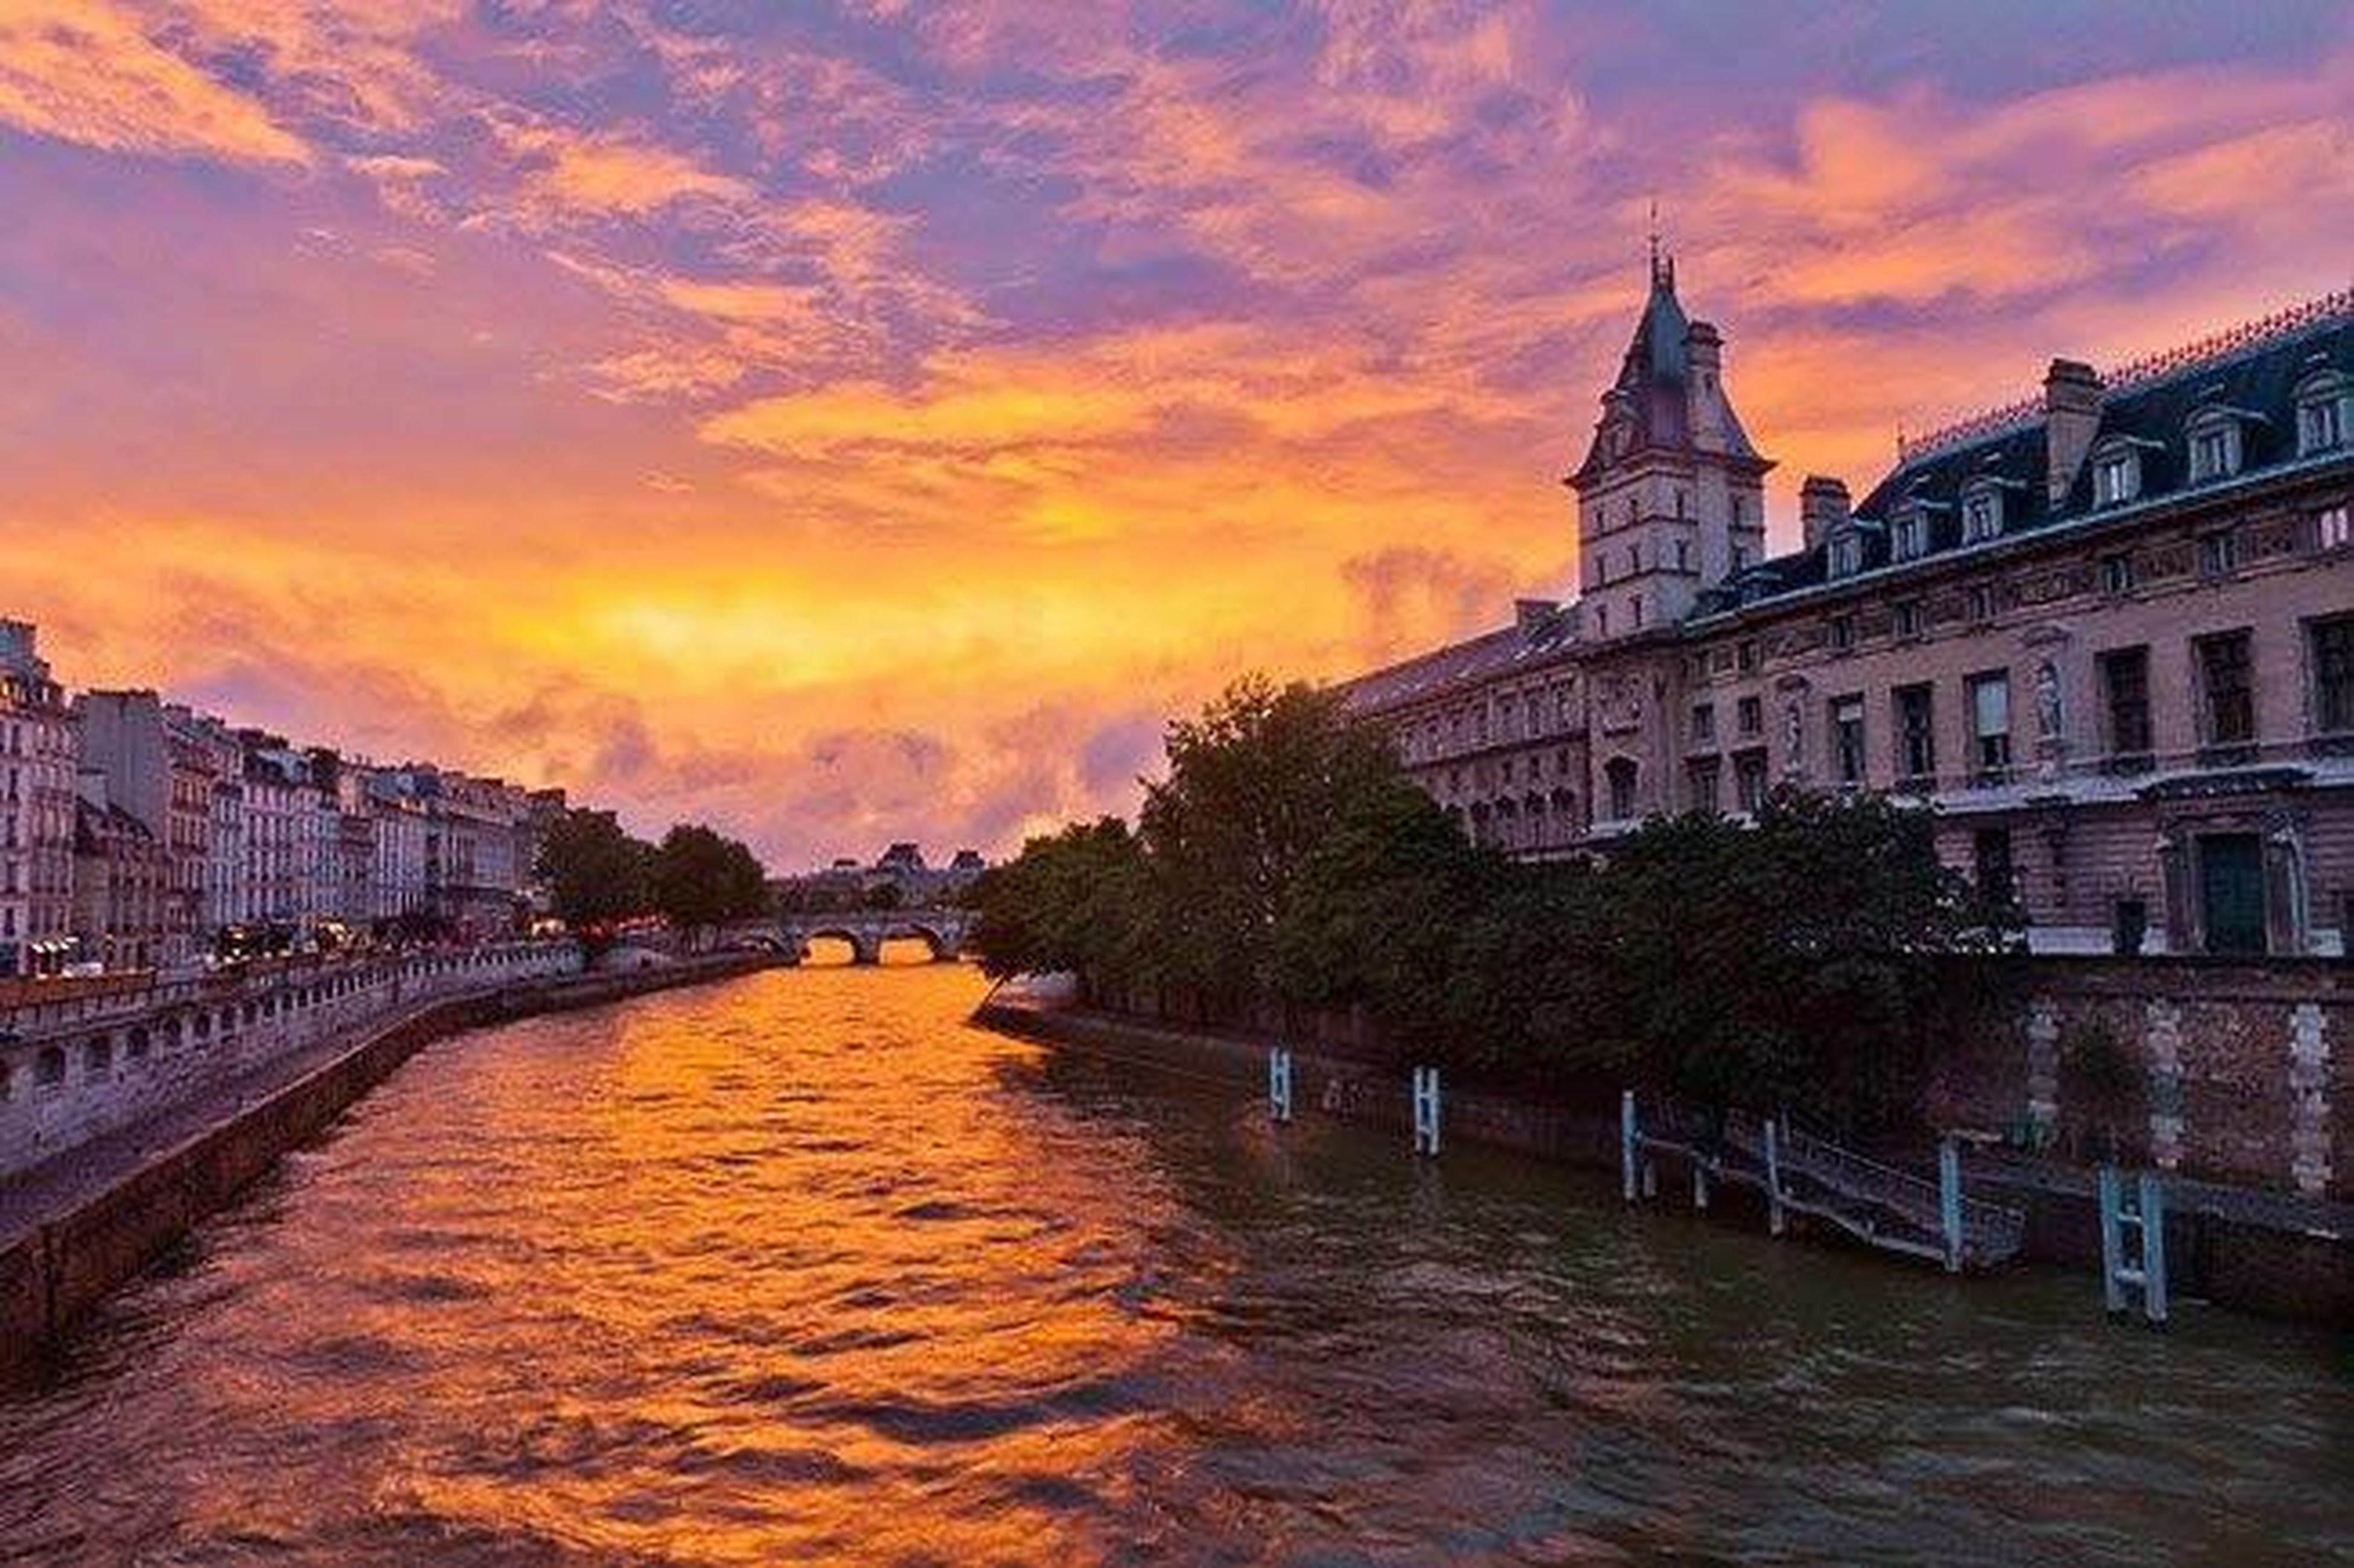 architecture, building exterior, built structure, sunset, water, sky, orange color, waterfront, city, cloud - sky, canal, river, cloud, building, residential building, residential structure, travel destinations, cloudy, outdoors, reflection